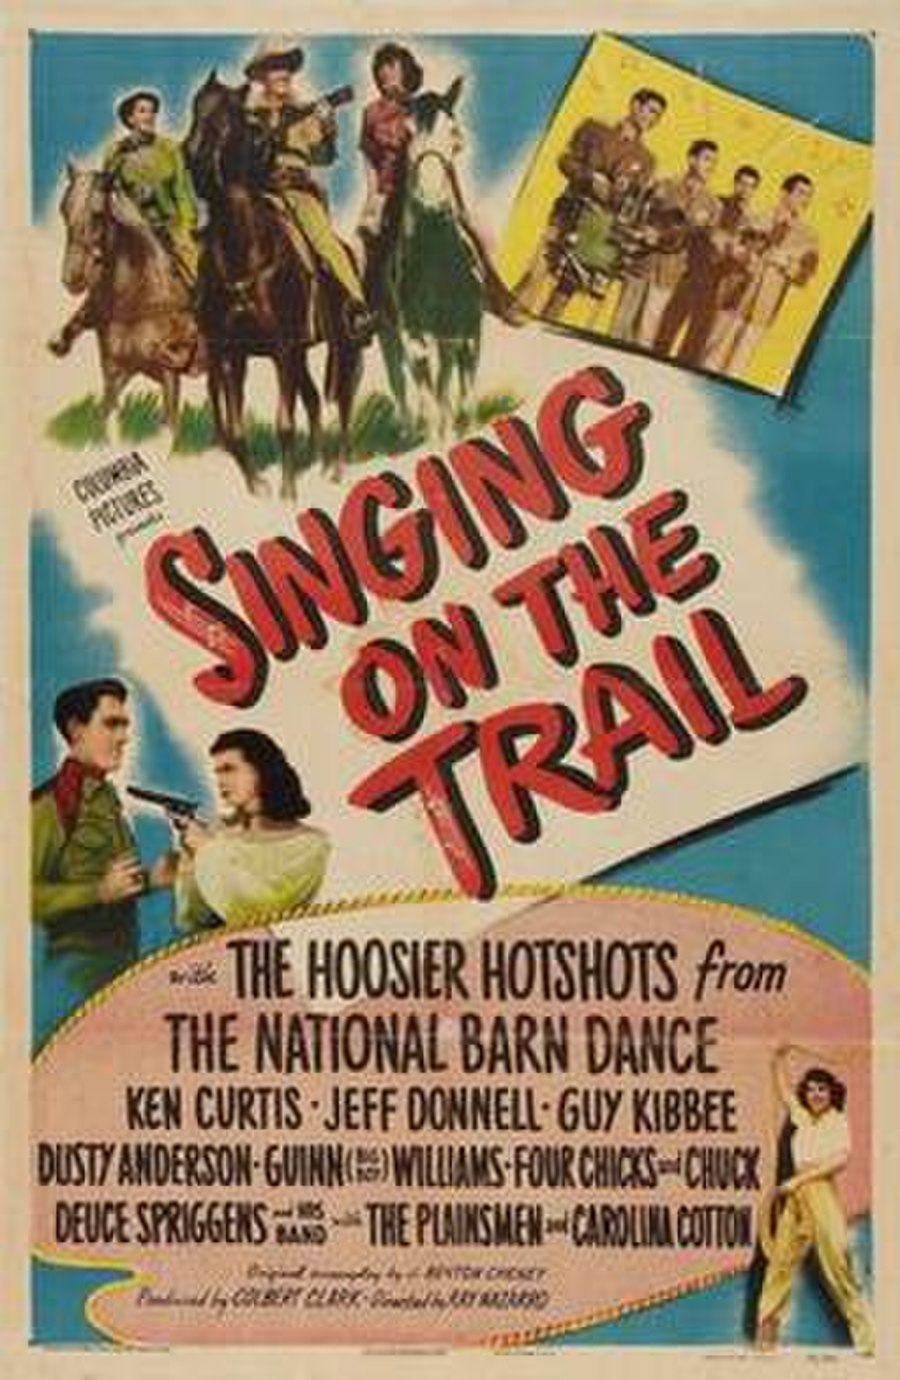 Singing on the Trail